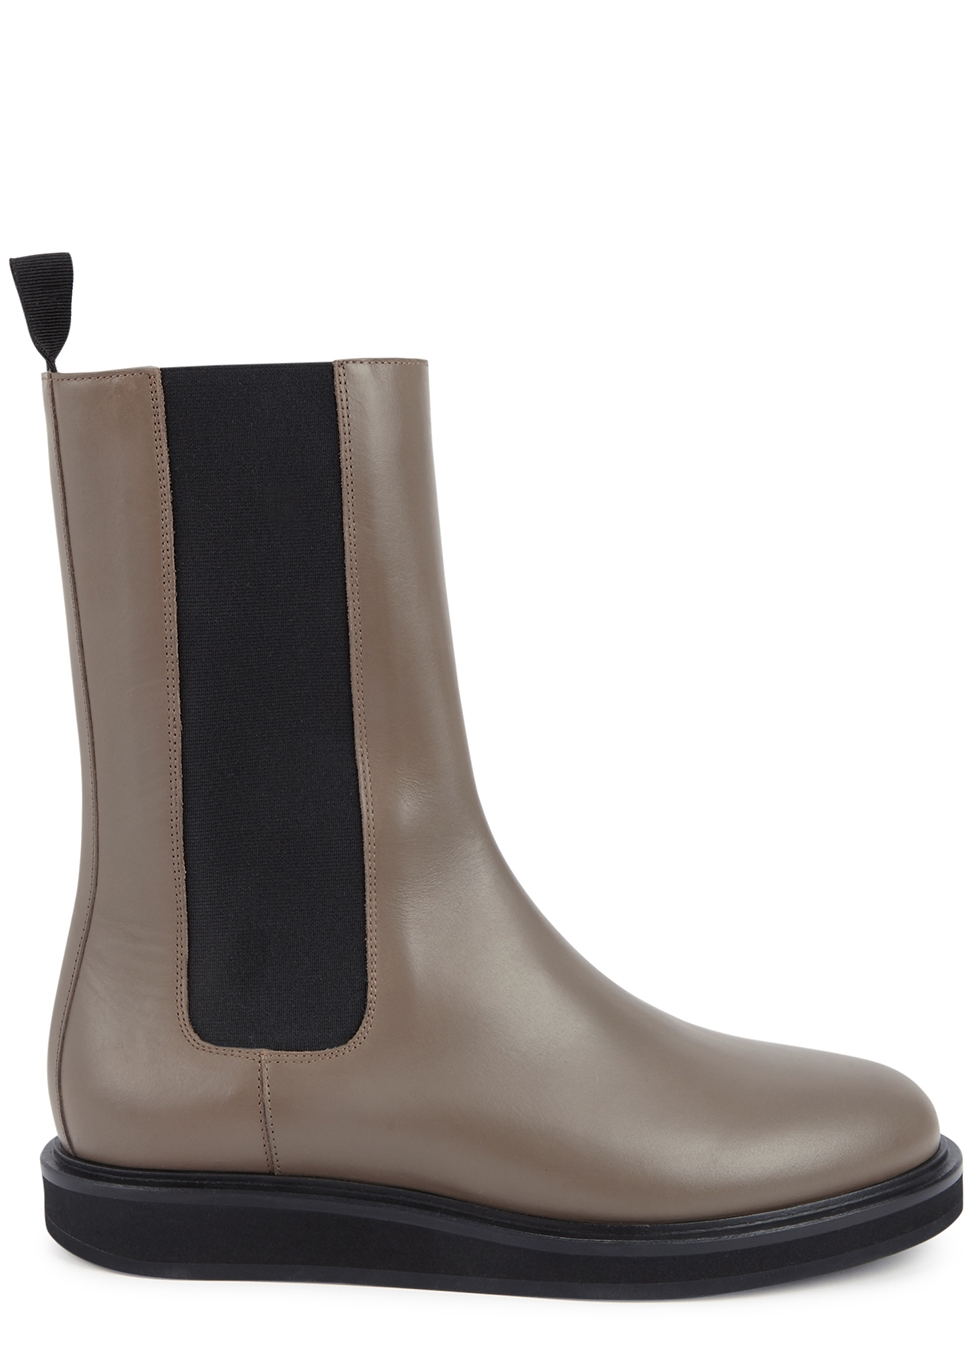 Taupe leather Chelsea boots